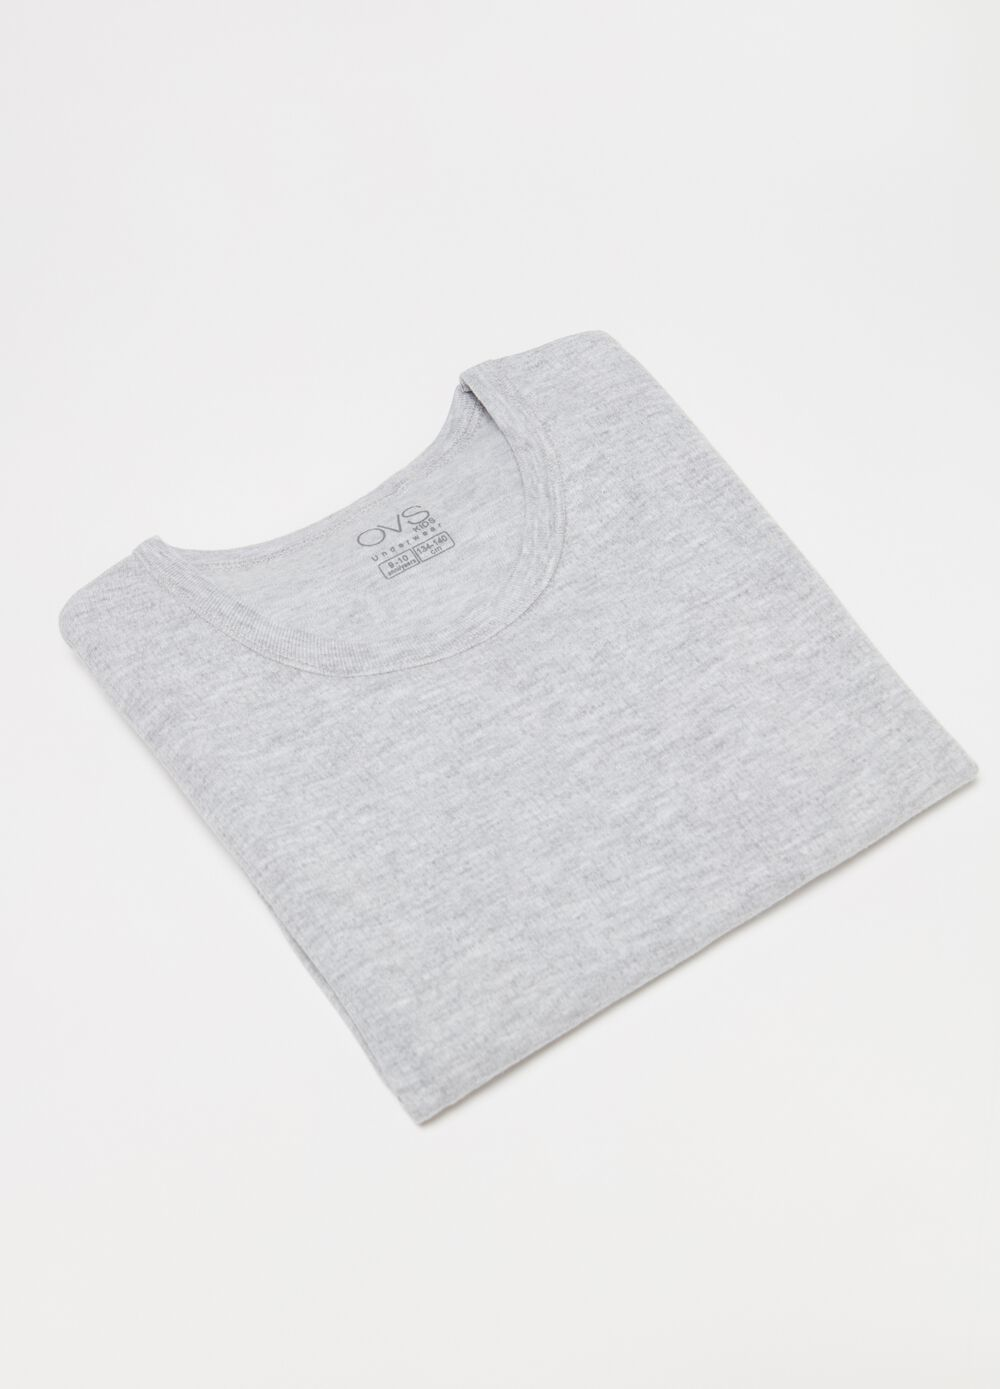 Undershirt in organic cotton and viscose